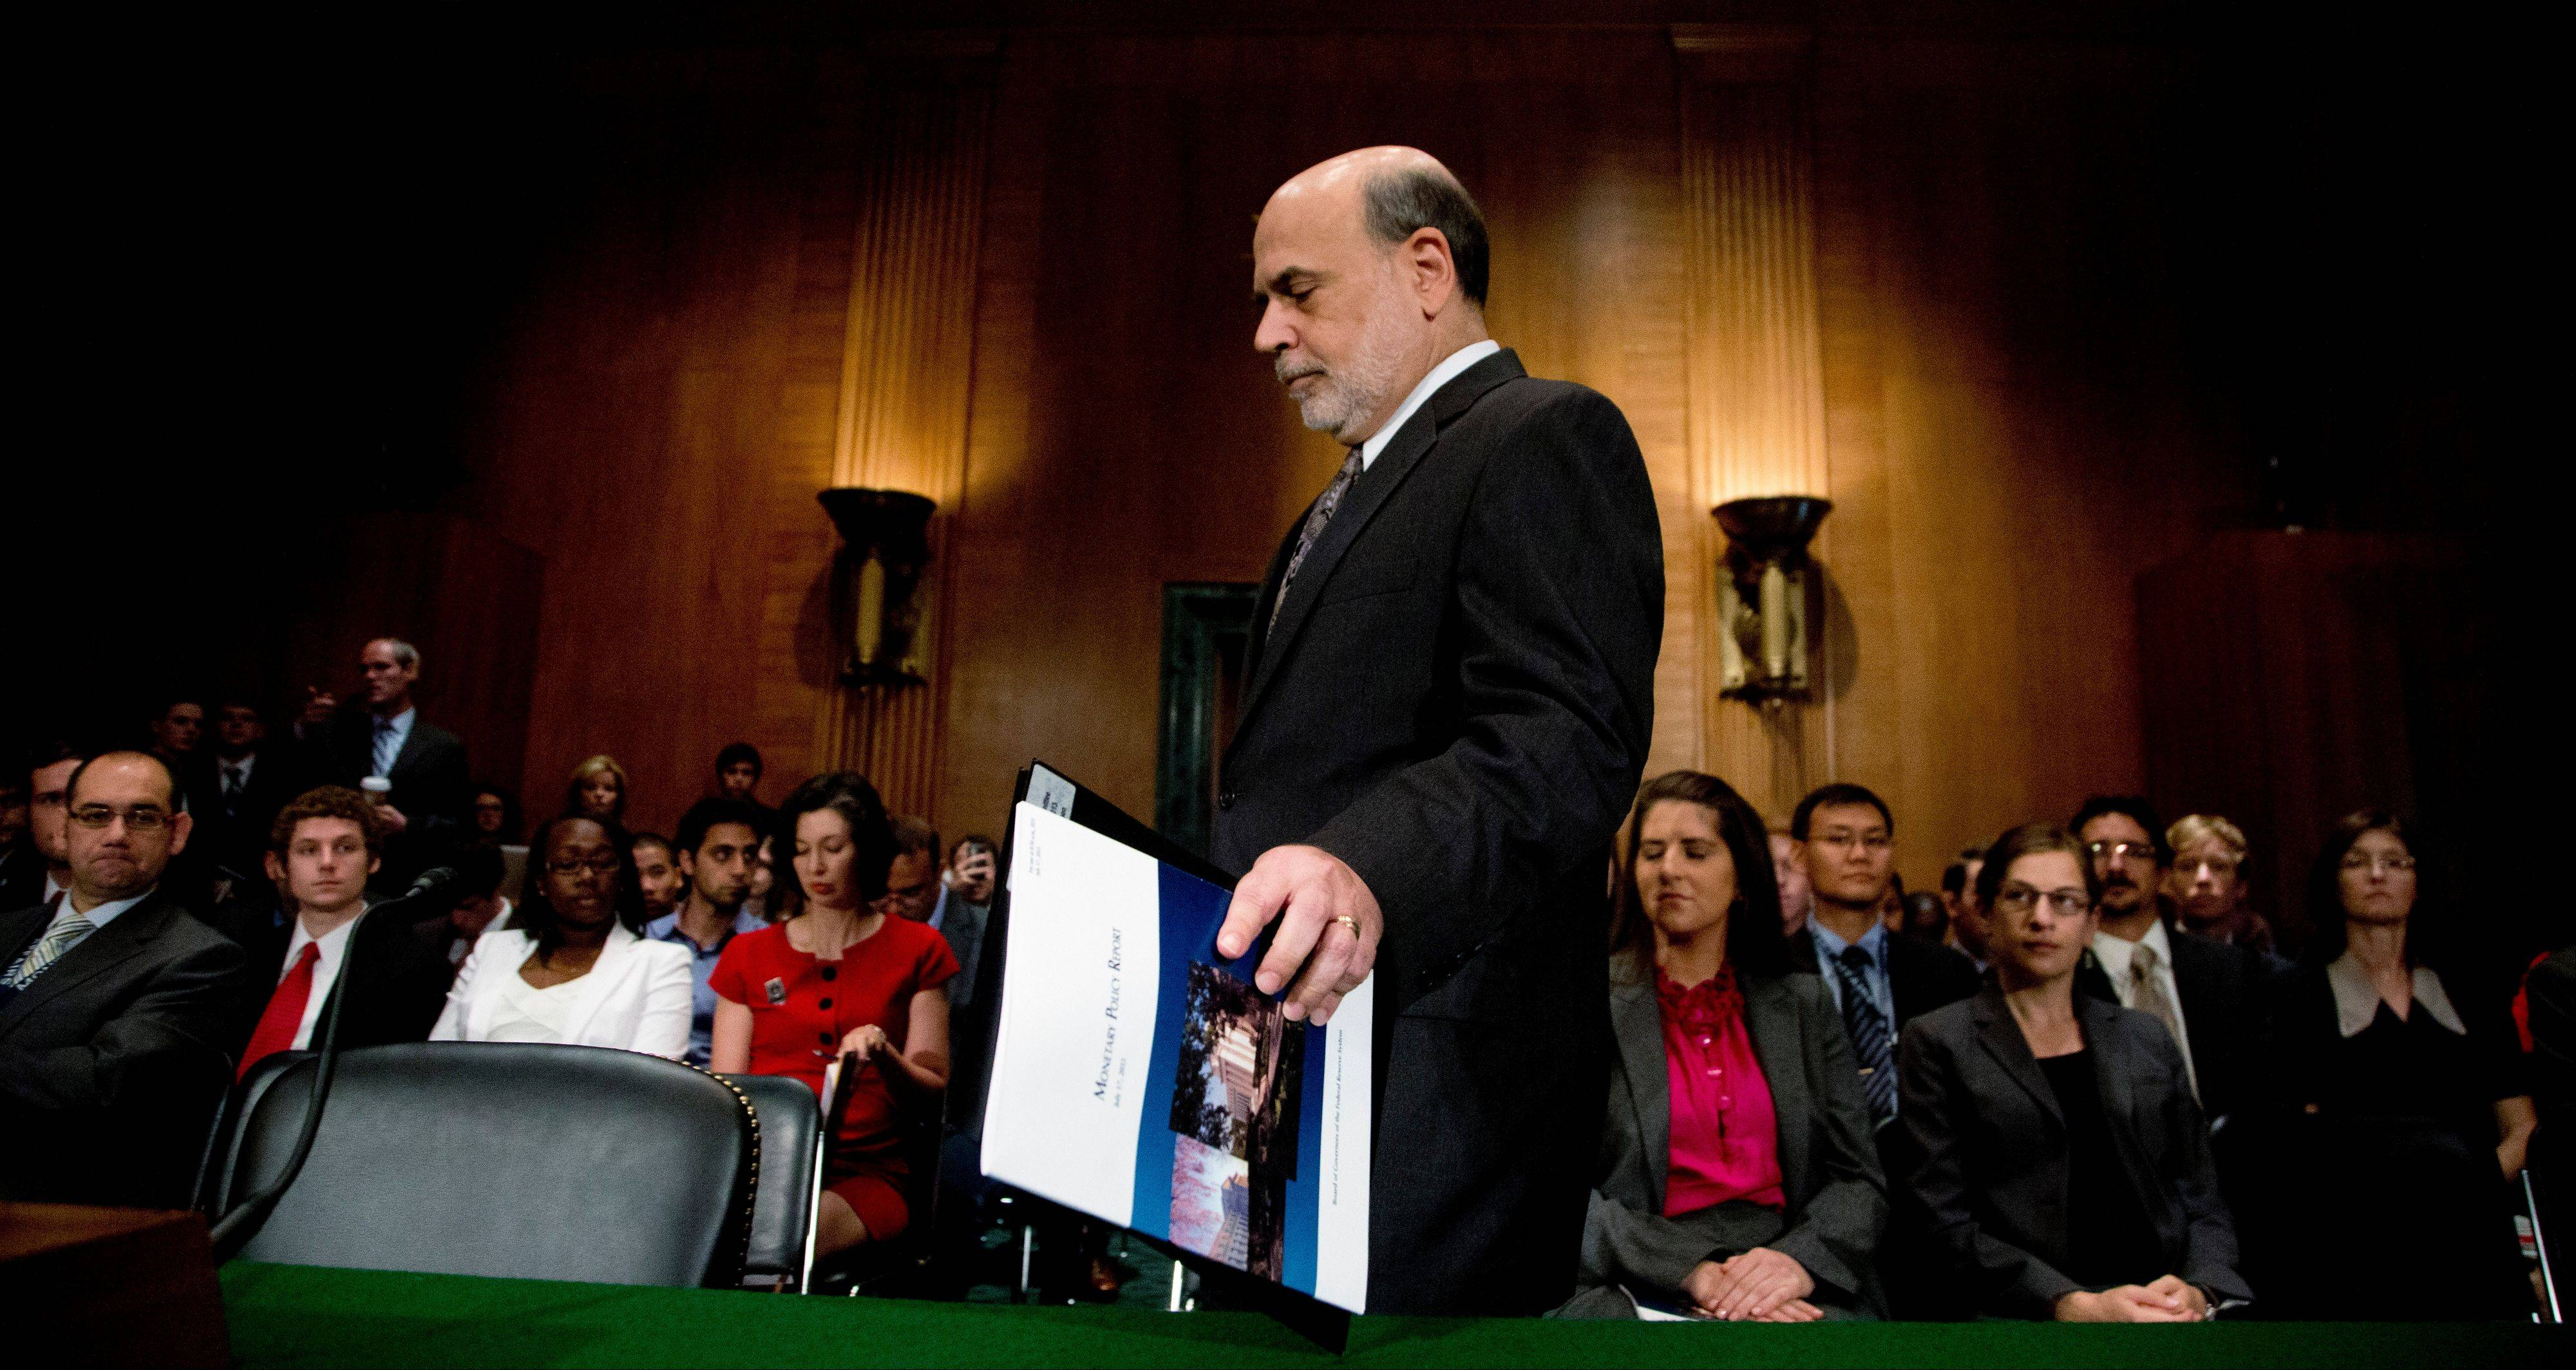 Federal Reserve Chairman Ben Bernanke arrives to testify before the Senate Banking, Housing, and Urban Affairs Committee hearing on July 18. The Federal Reserve issued a statement after its two-day policy meeting ended Wednesday, throttling back on its optimism over the nation's economic recovery.